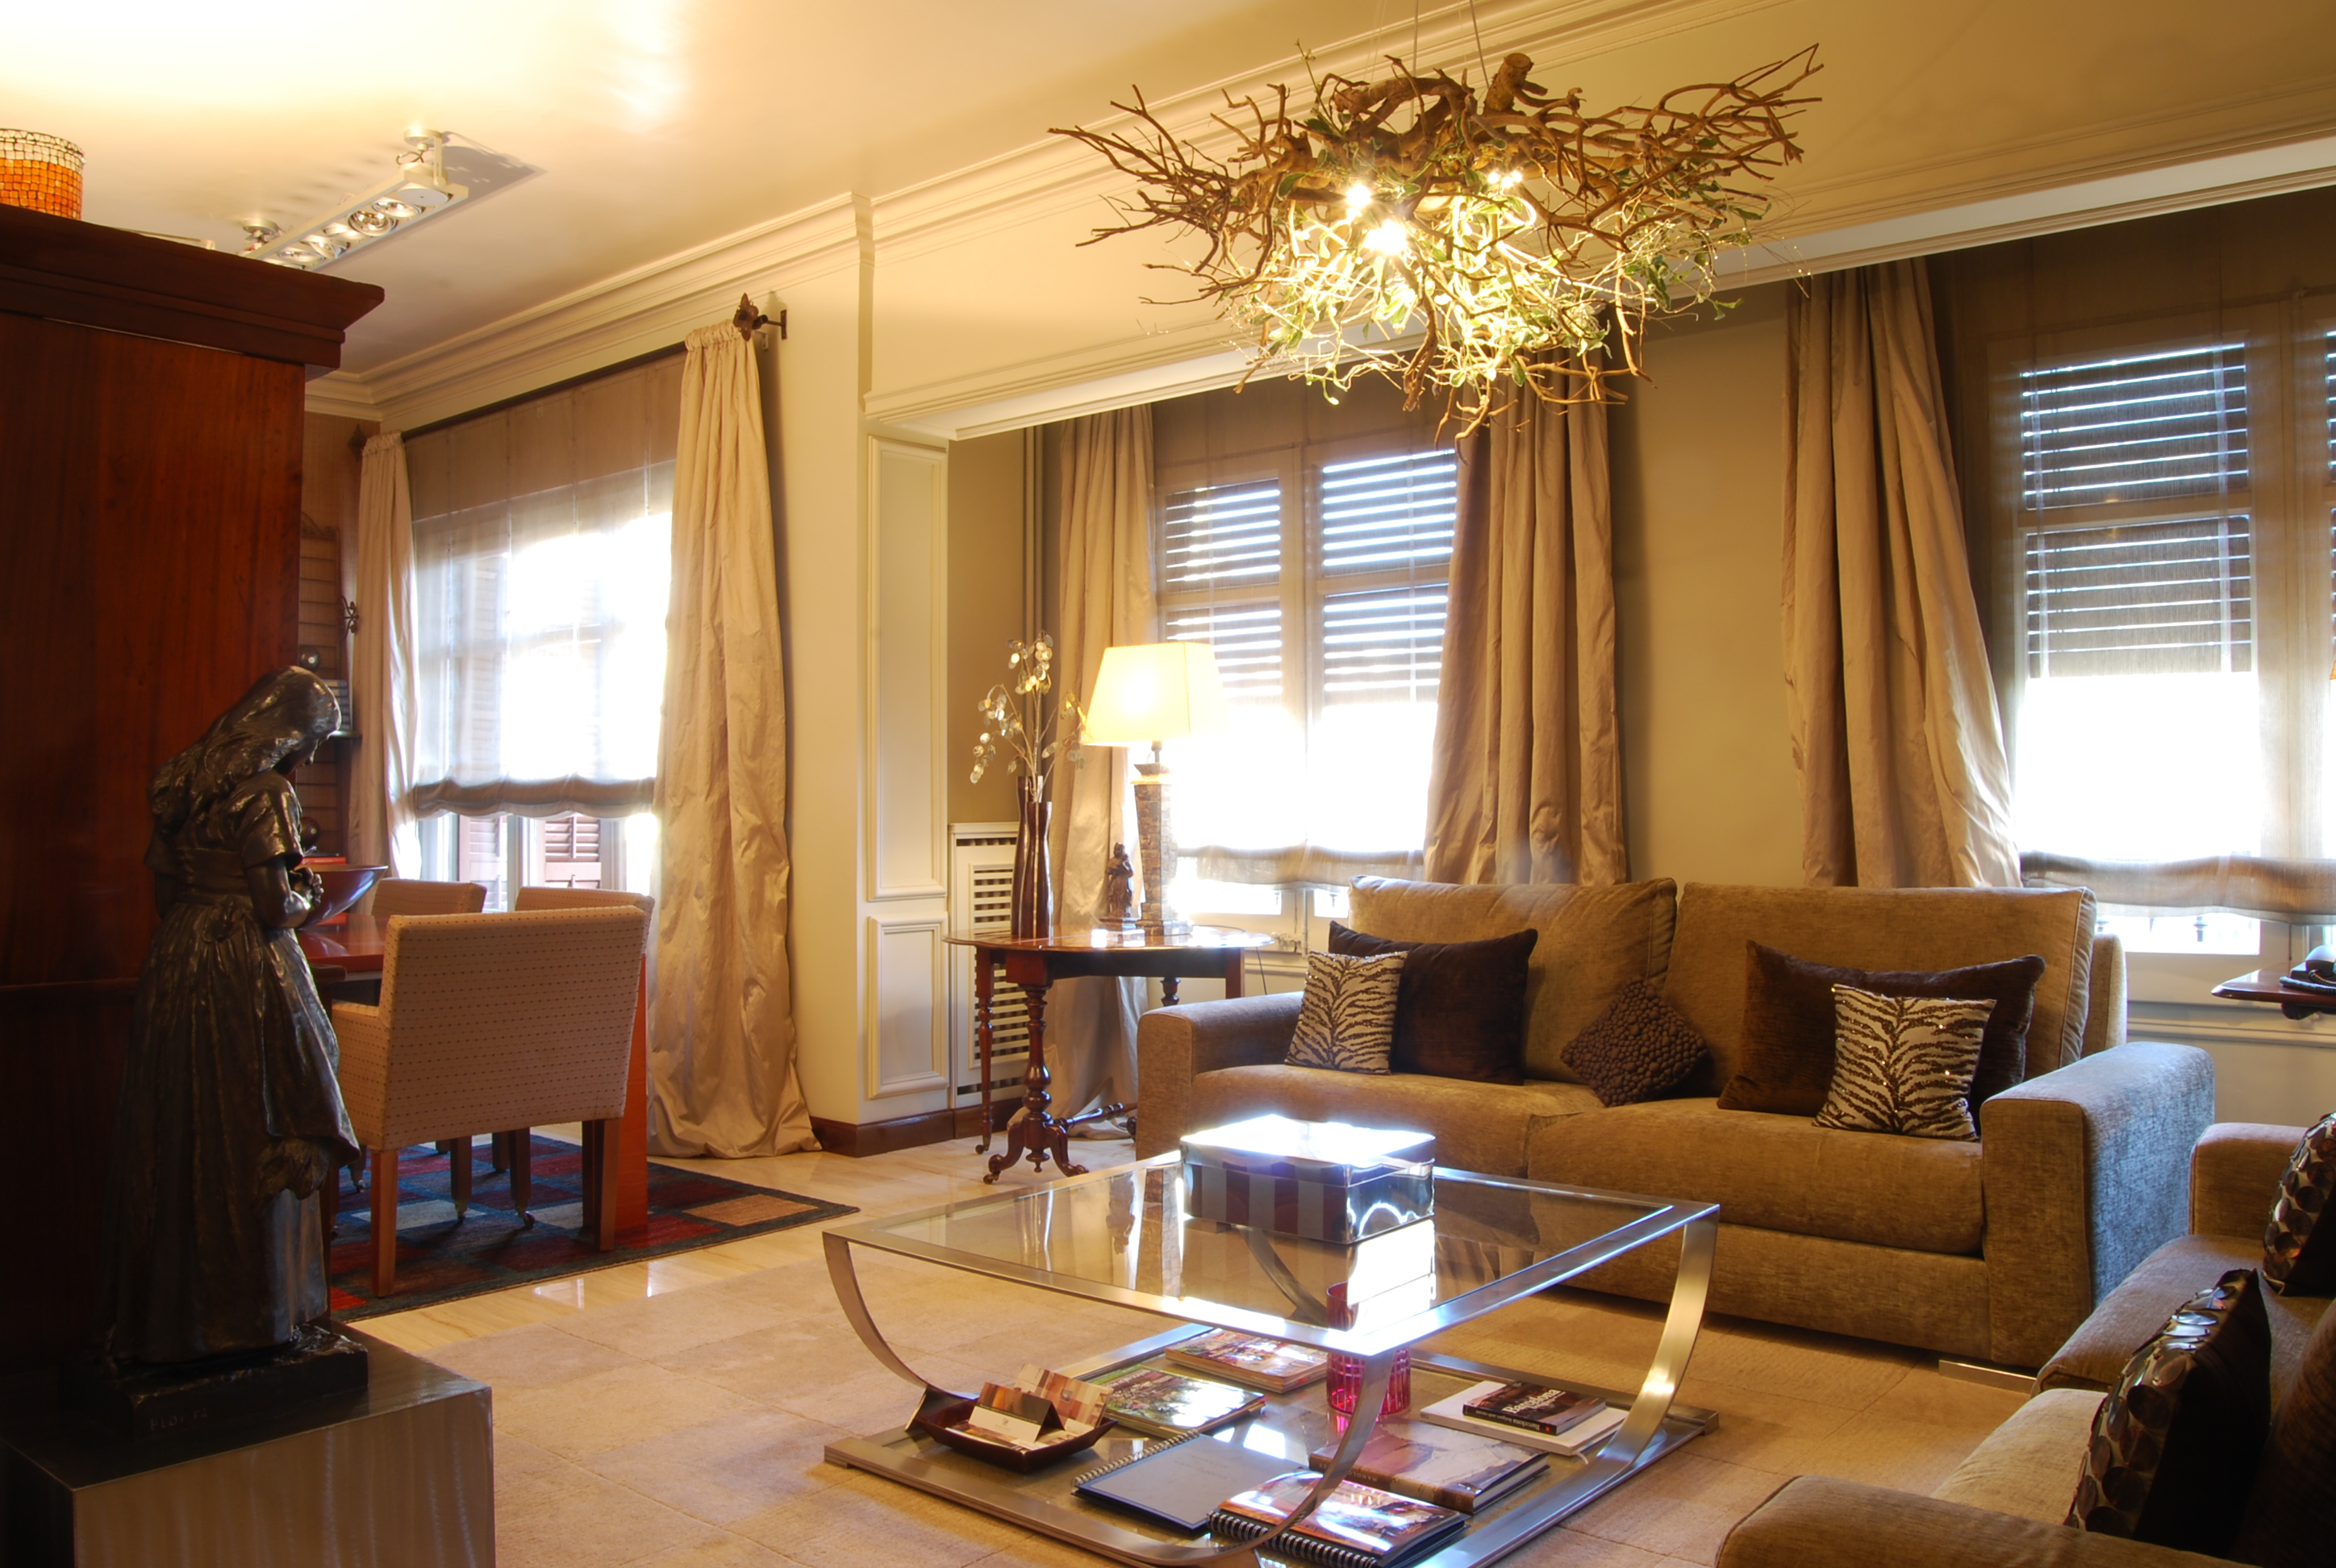 Furnished 4 bedroom flat for rent in Eixample